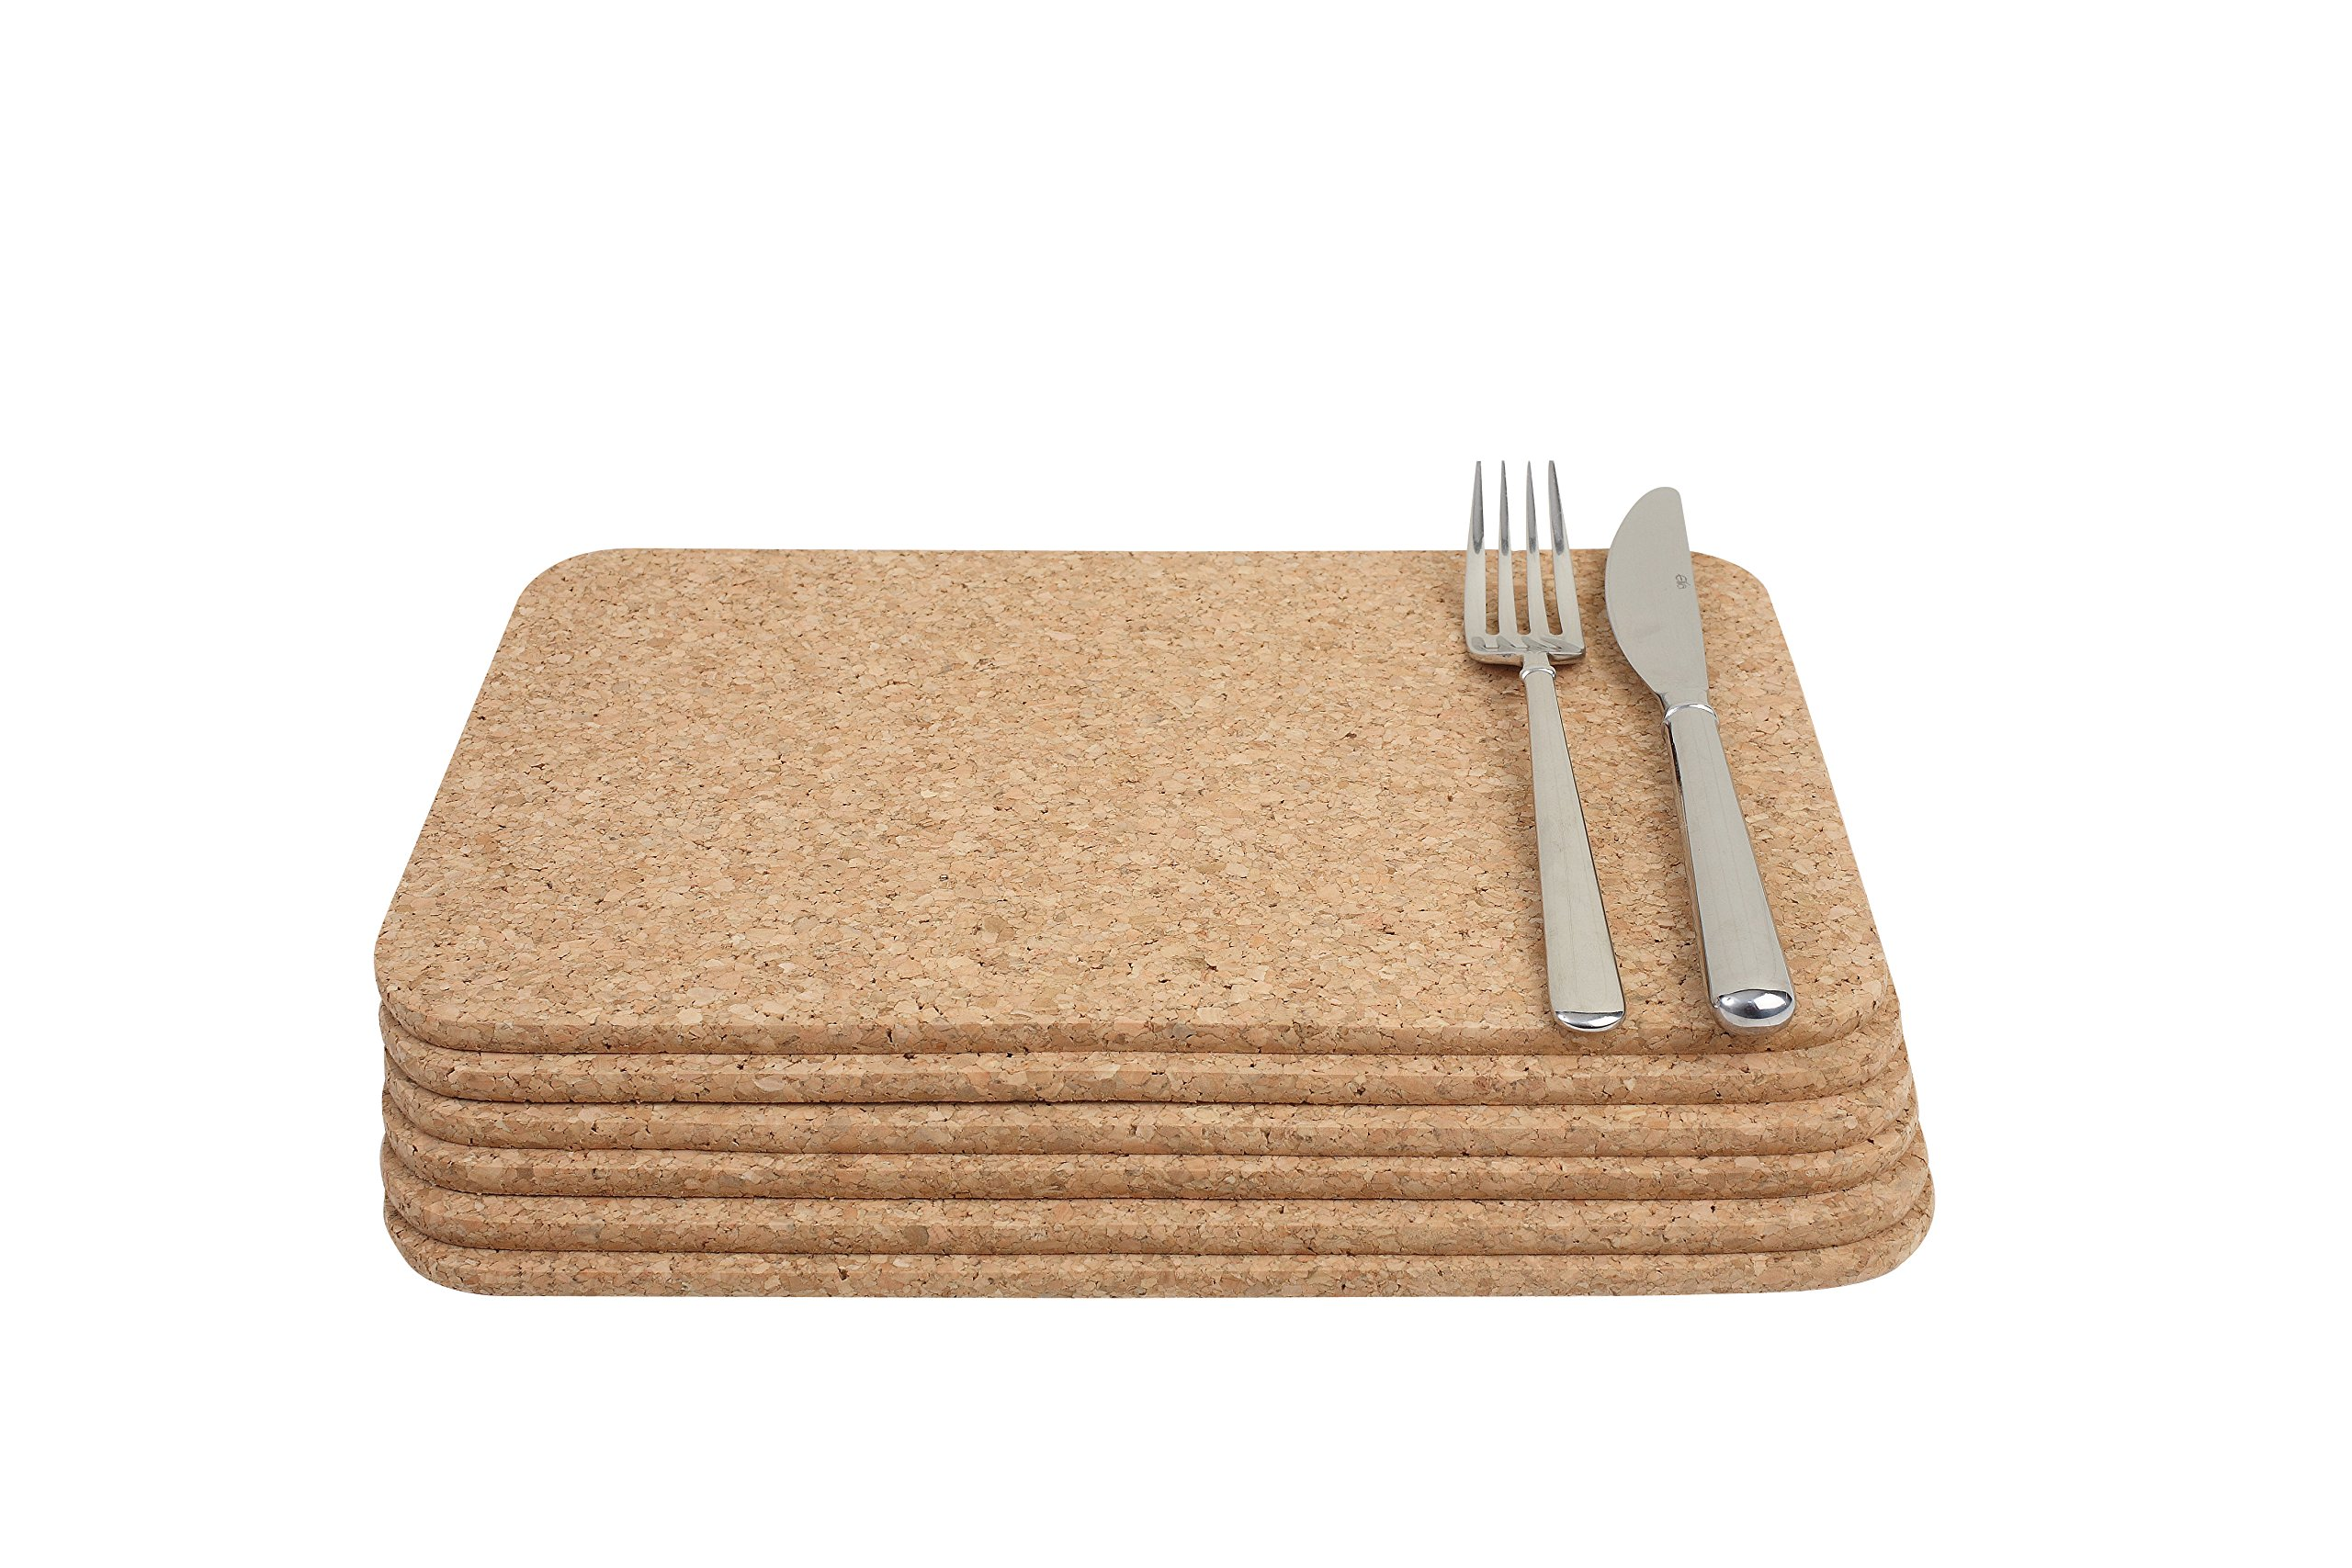 T&G Woodware T&G Rectangular Table Mats in Cork, 28 x 20 x 0.6 cm, Set of 6